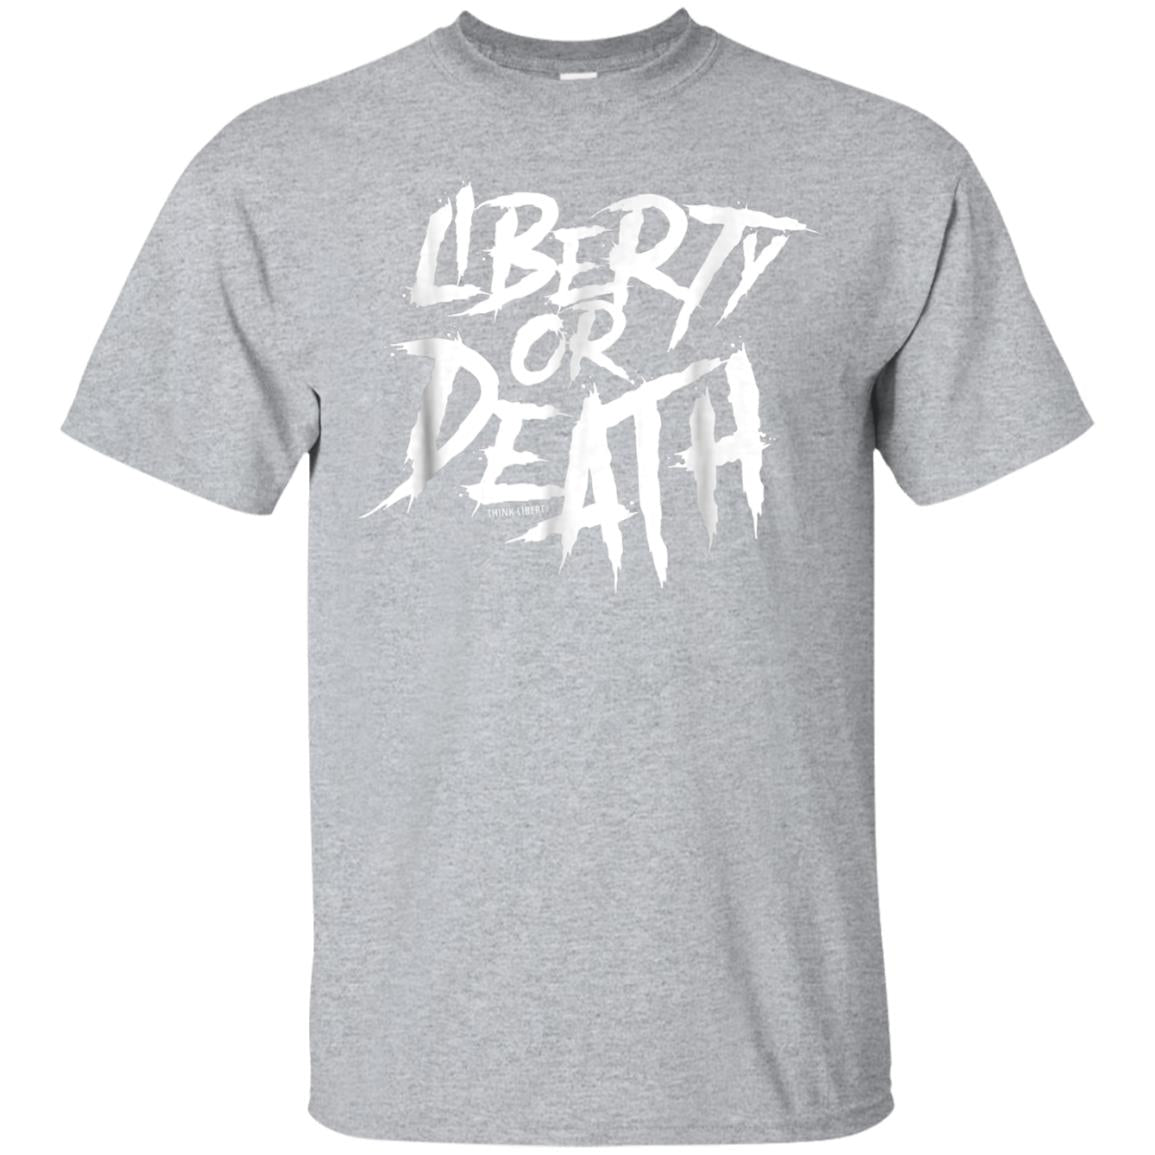 Liberty or Death T-Shirt 99promocode